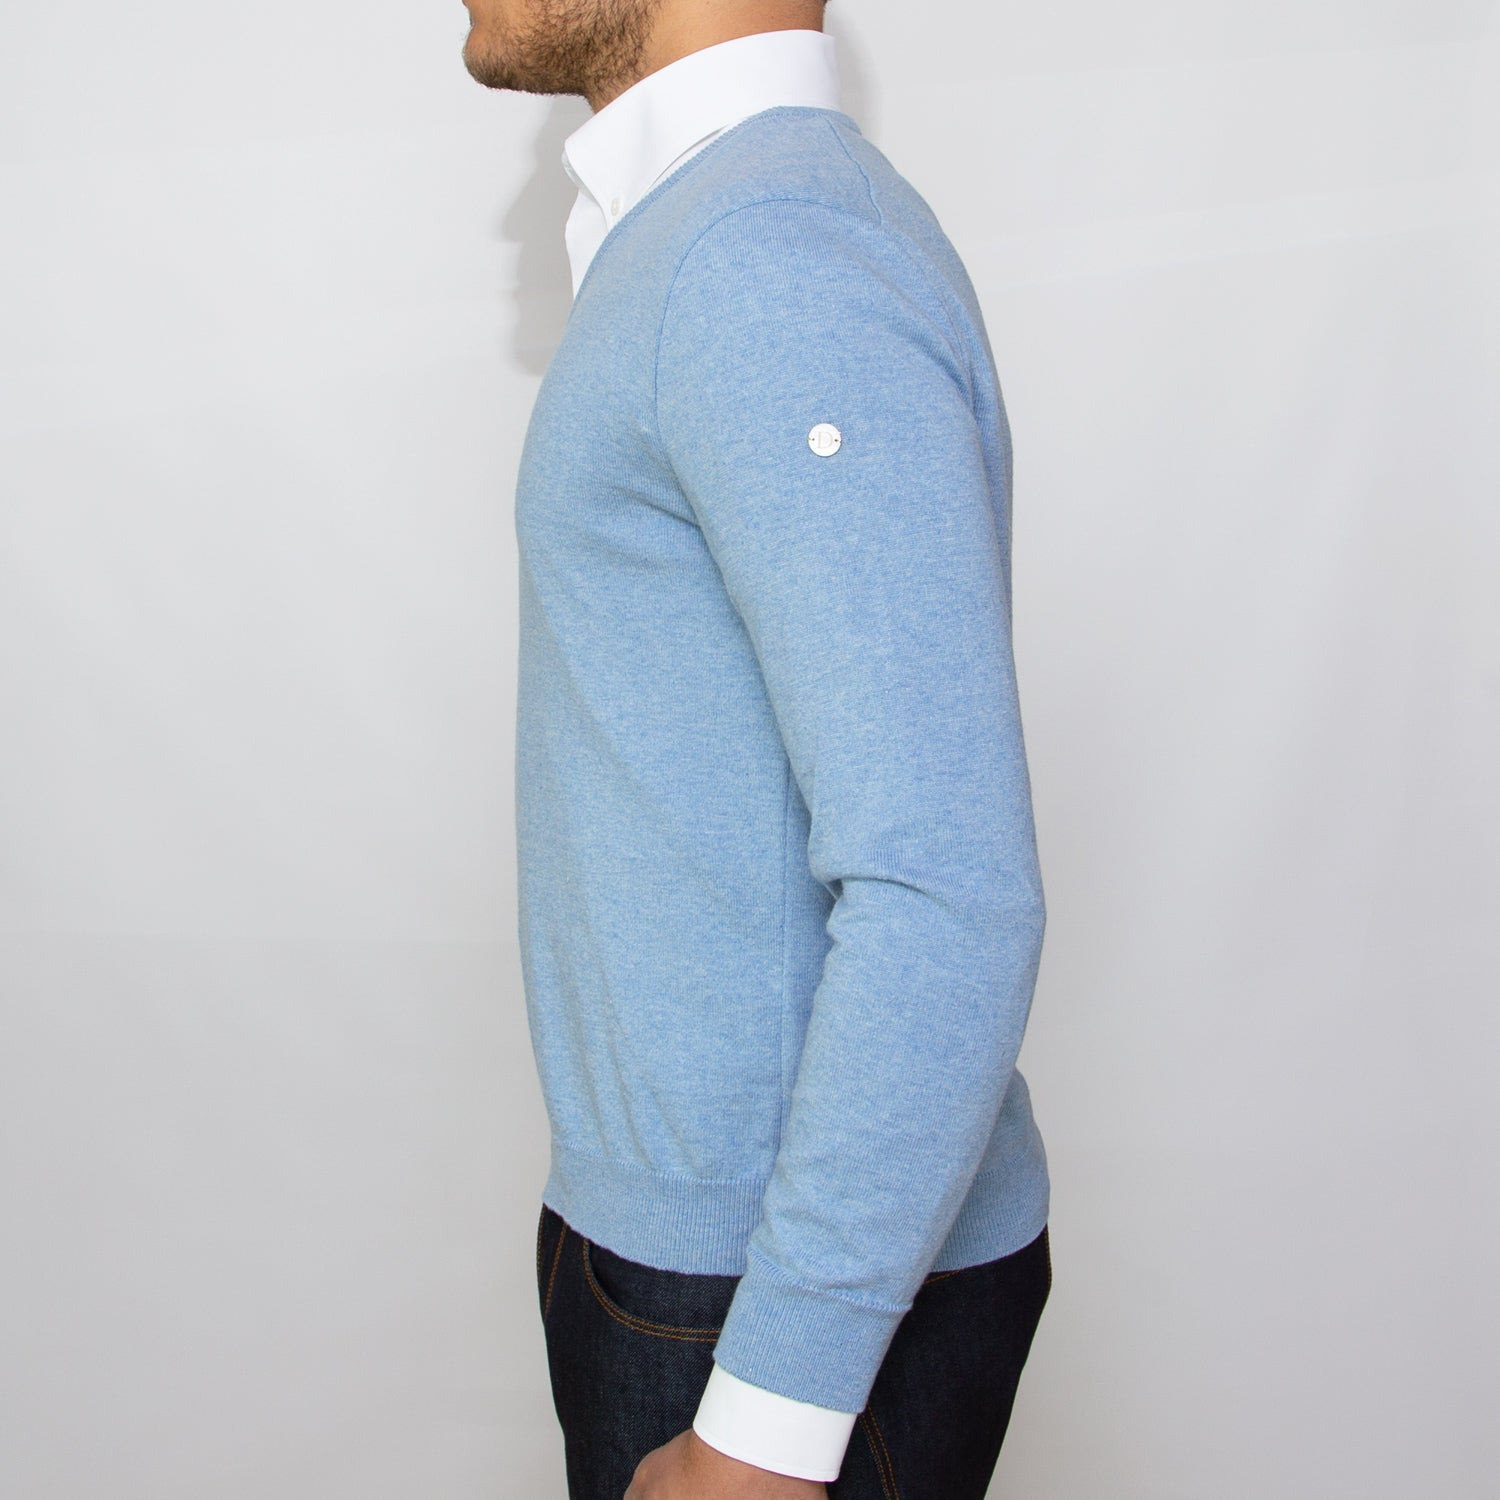 DARIO'S Couture V-Neck Pullover Köln 100% African Cotton in Hellblau